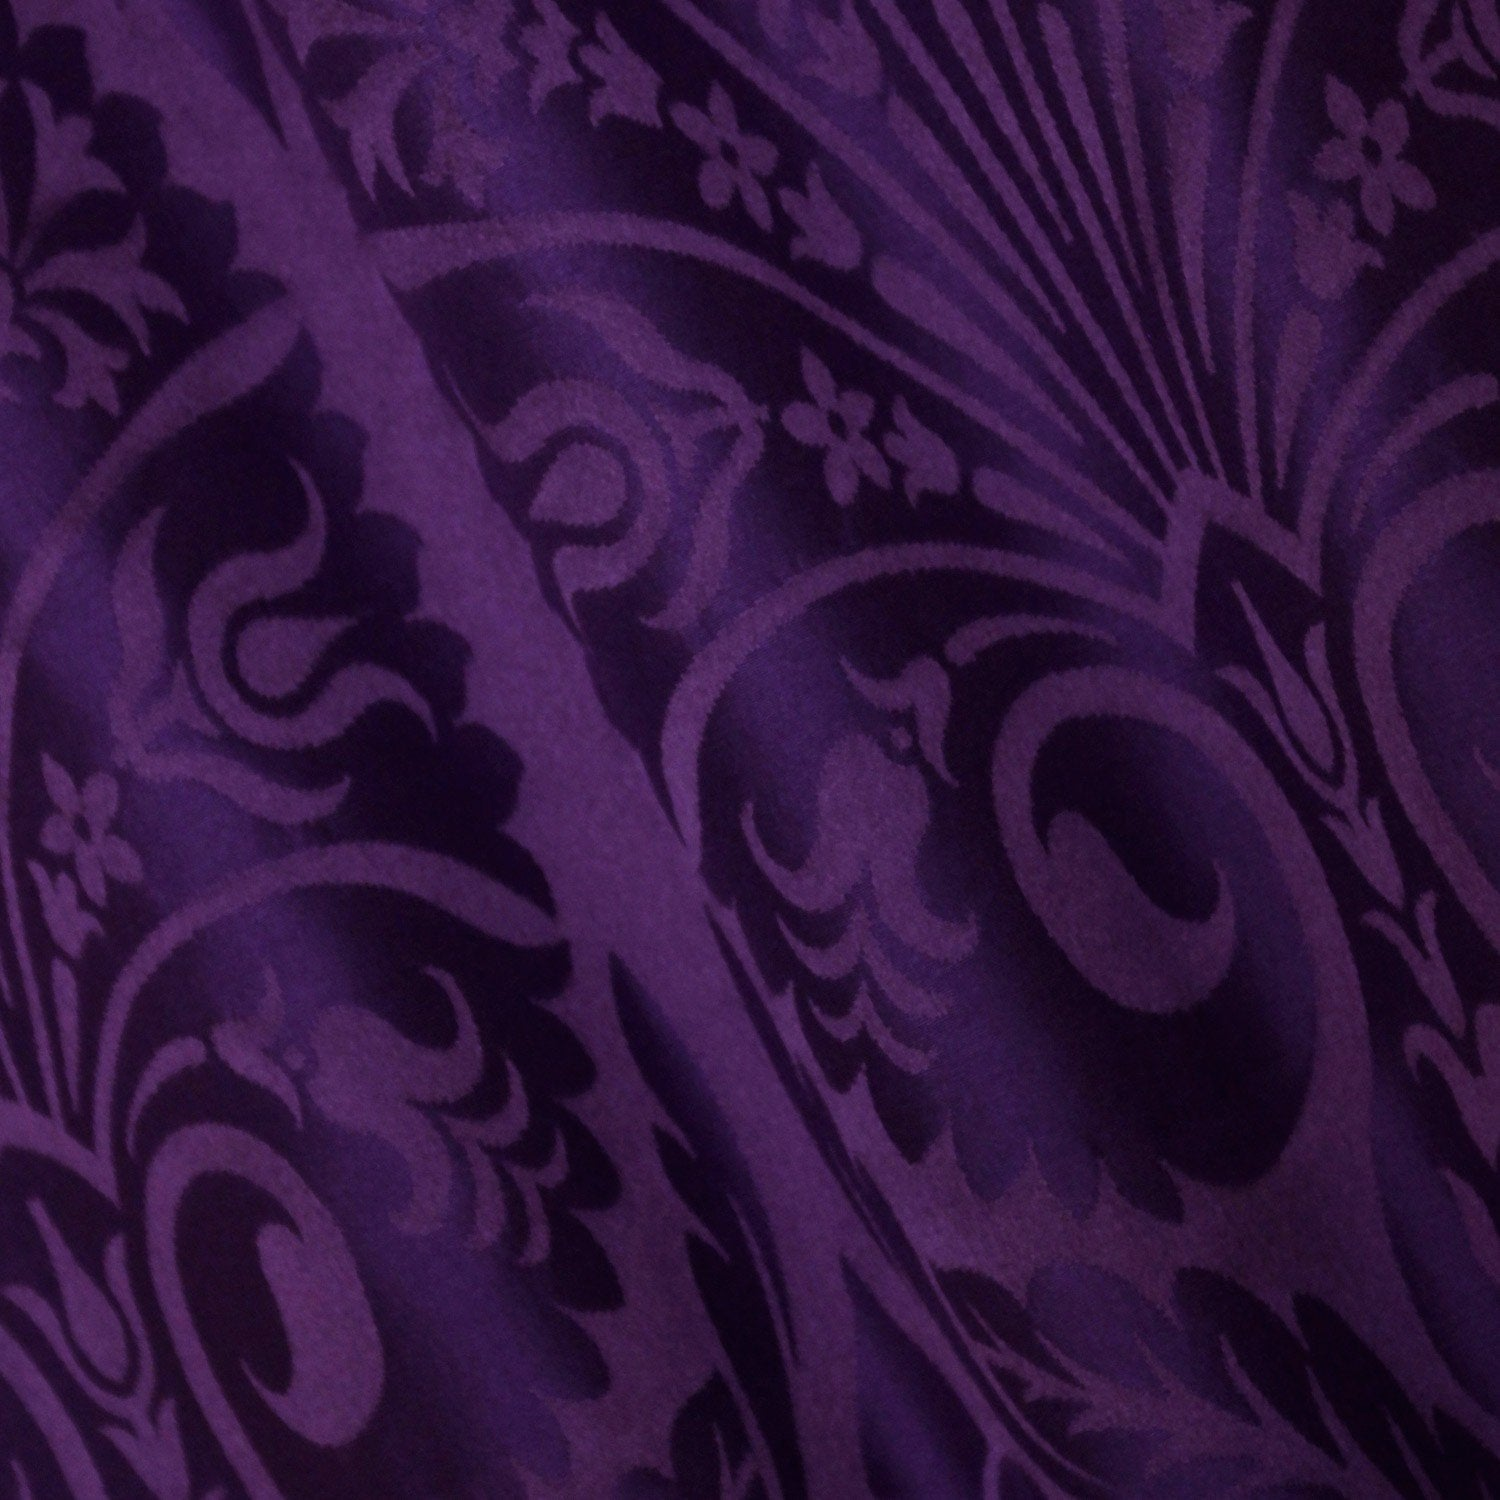 St Nicolas Damask - Violet - Watts & Co. (international)